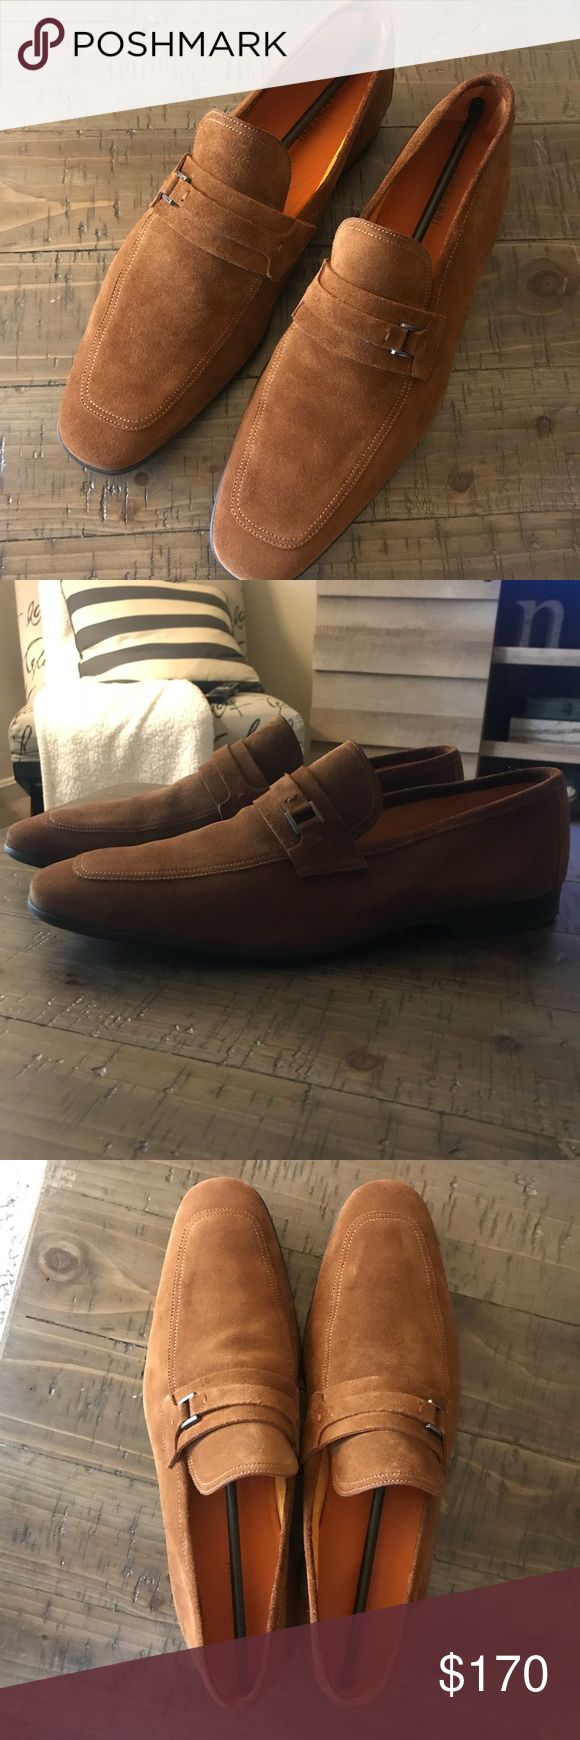 NEW Magnanni Loafers New in box Magnanni Suede loafer in cognac color with buckl...